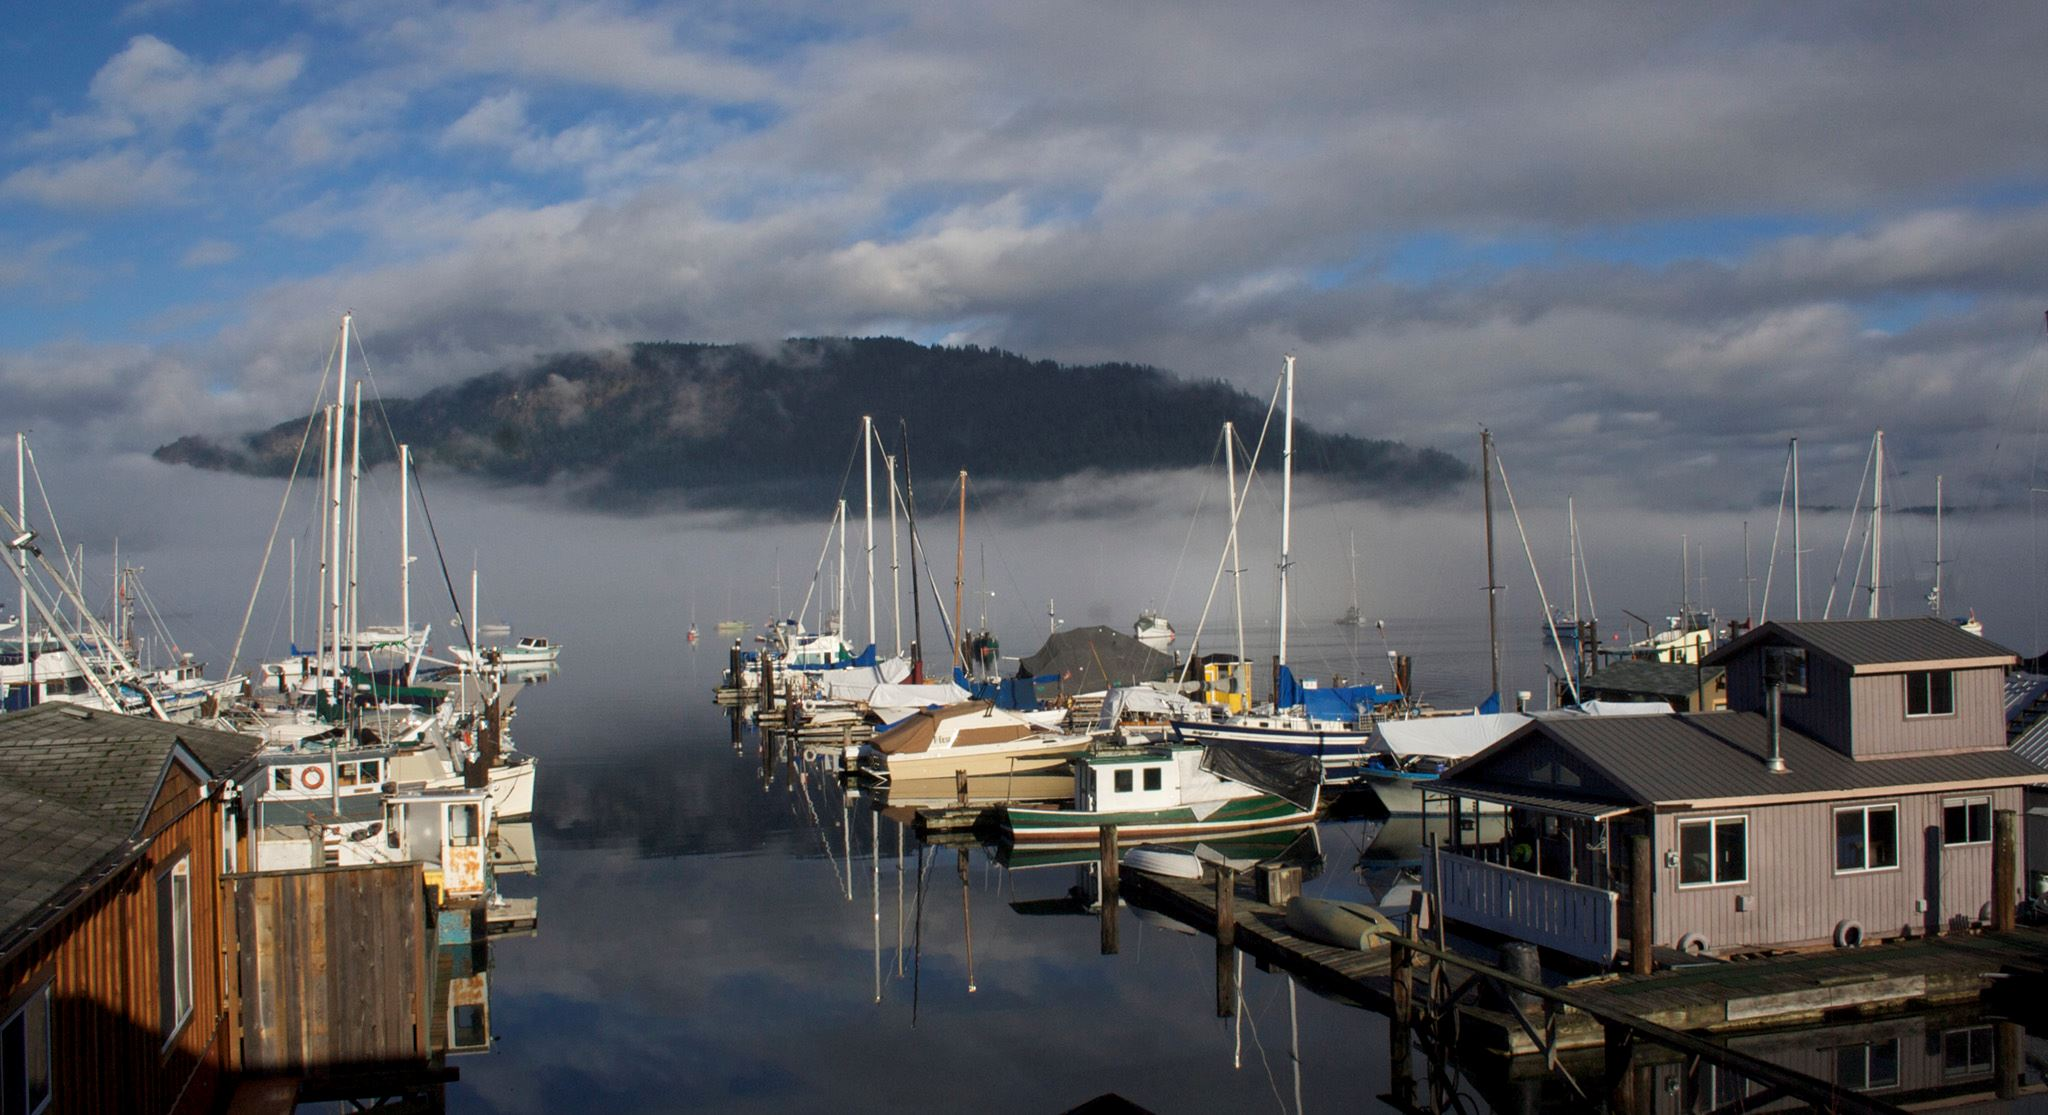 Fog rolled in over marina.